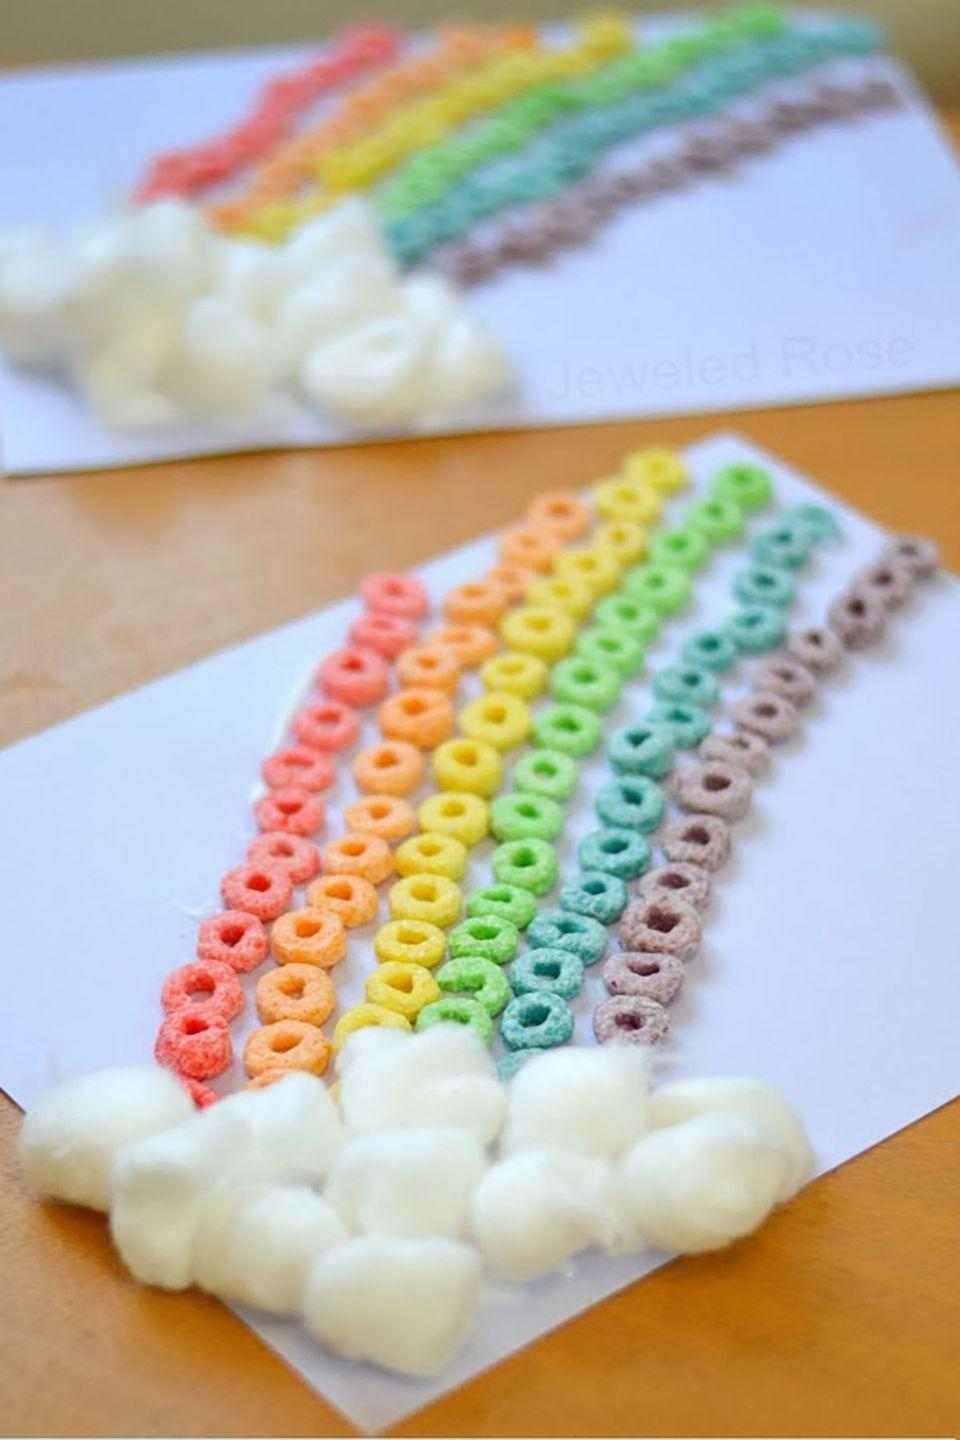 """<p>This colorful craft is fairly straightforward and will keep the little ones occupied all afternoon.</p><p><strong>Get the tutorial from <a href=""""http://jennyirvine.com/easy-st-patricks-day-crafts-for-kids-with-supply-list/"""" rel=""""nofollow noopener"""" target=""""_blank"""" data-ylk=""""slk:Jenny Irvine"""" class=""""link rapid-noclick-resp"""">Jenny Irvine</a>. </strong></p>"""